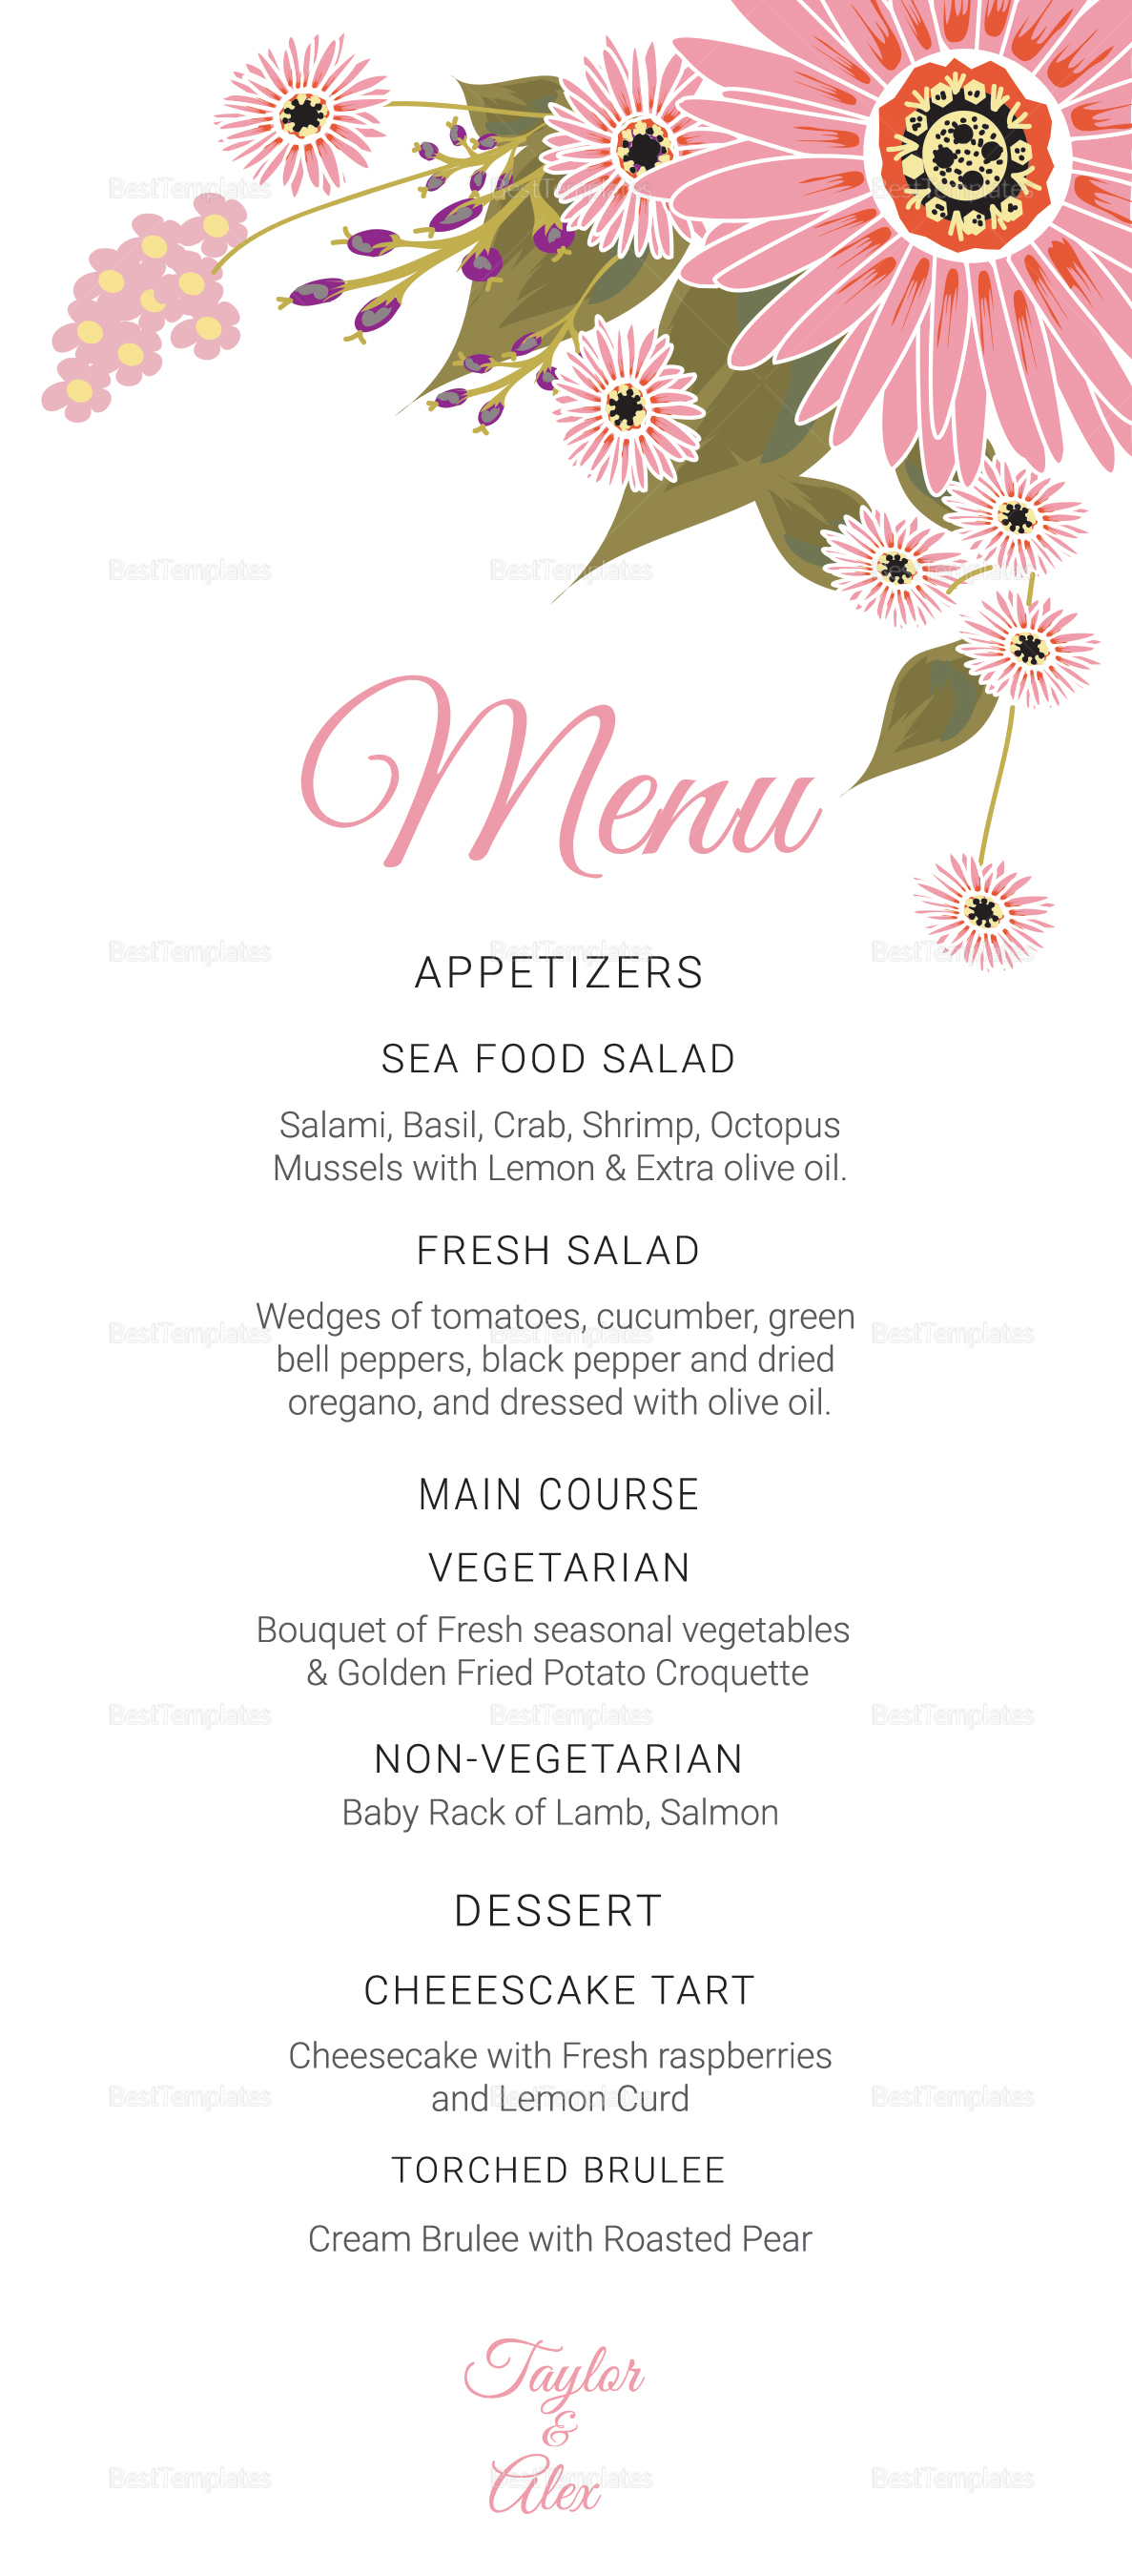 Floral wedding menu card design template in illustrator for Wedding menu cards templates for free